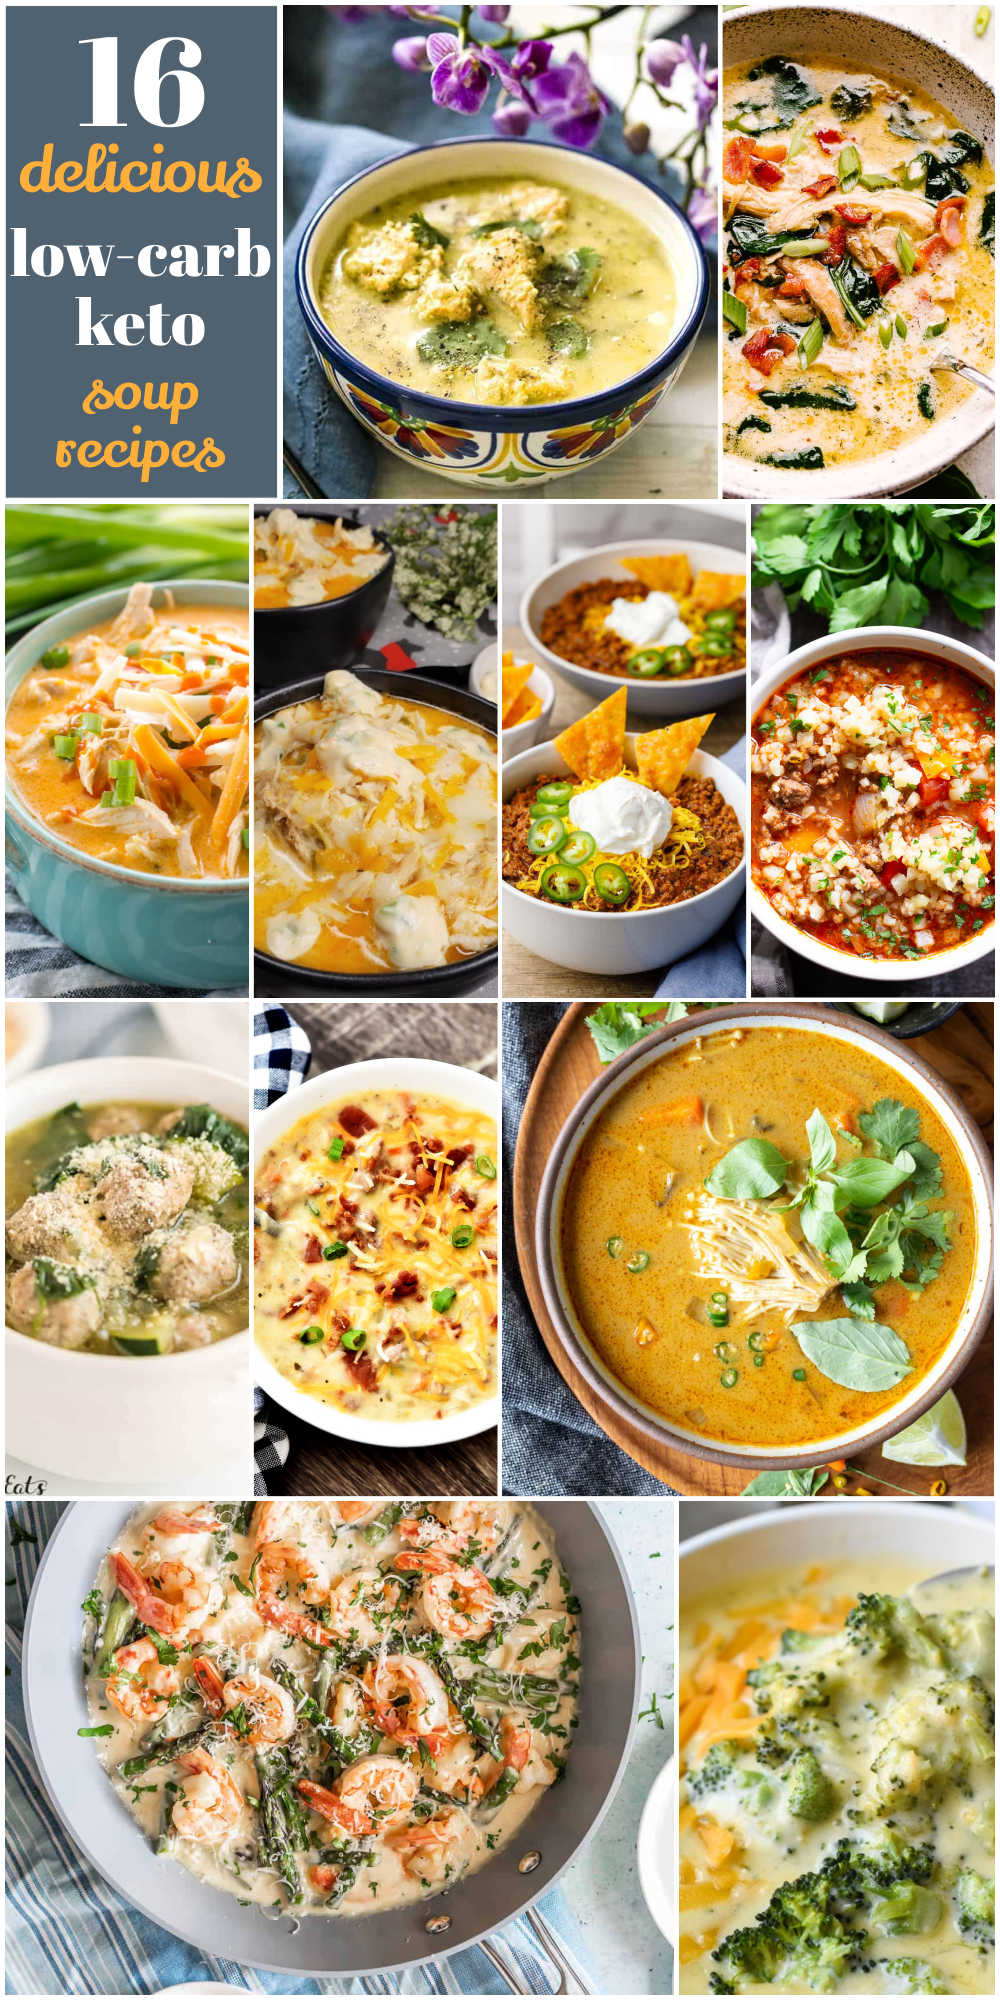 16 delicious low carb keto soup recipes